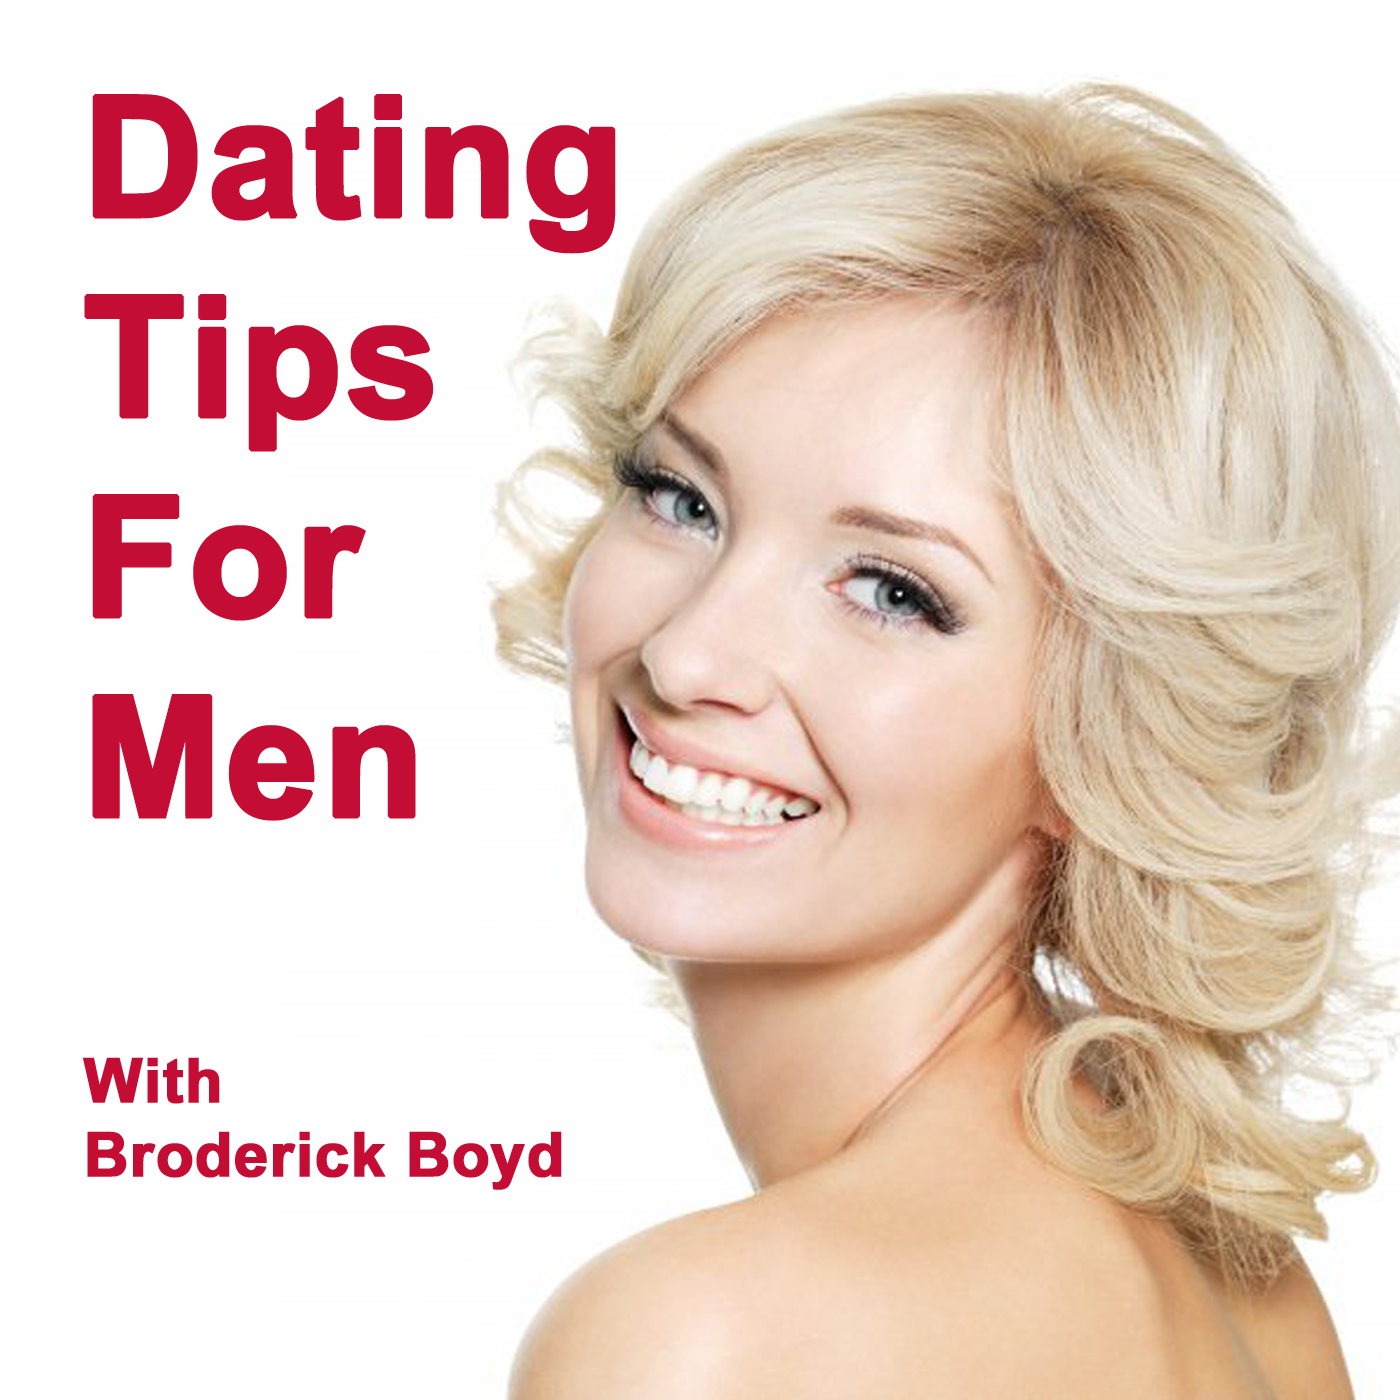 Dating Tips, Attracting Women & Dating Advice For Men Podcast! | Find The Right Woman